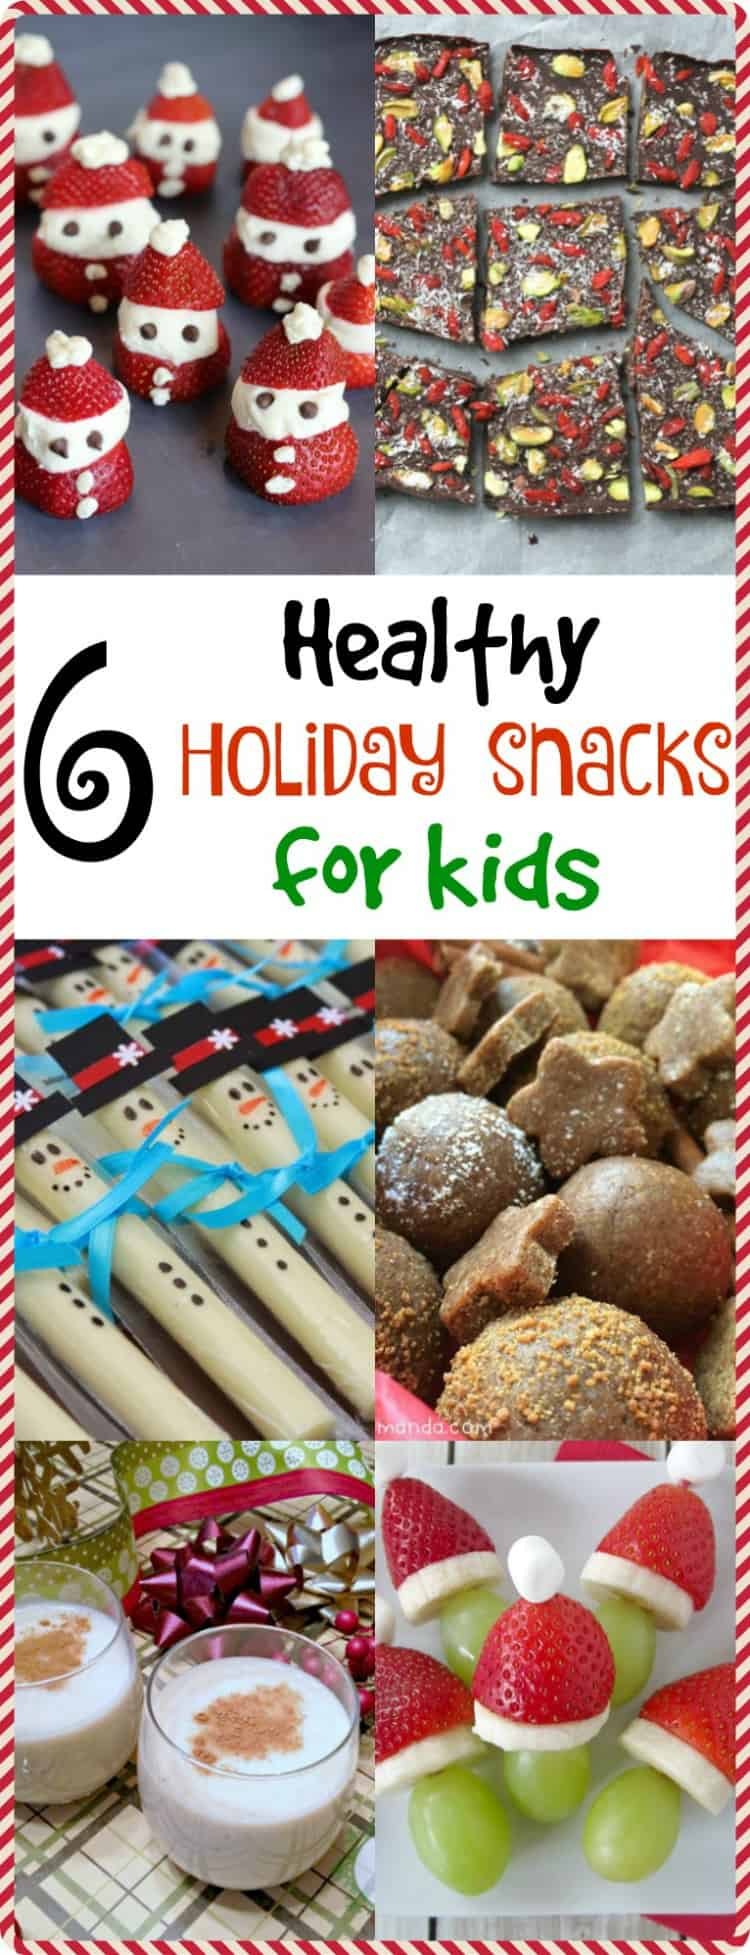 Use these 6 healthy holiday snacks to curb your child's hunger until dinner time! These festive treats will be sure to put your kids in the holiday spirit.